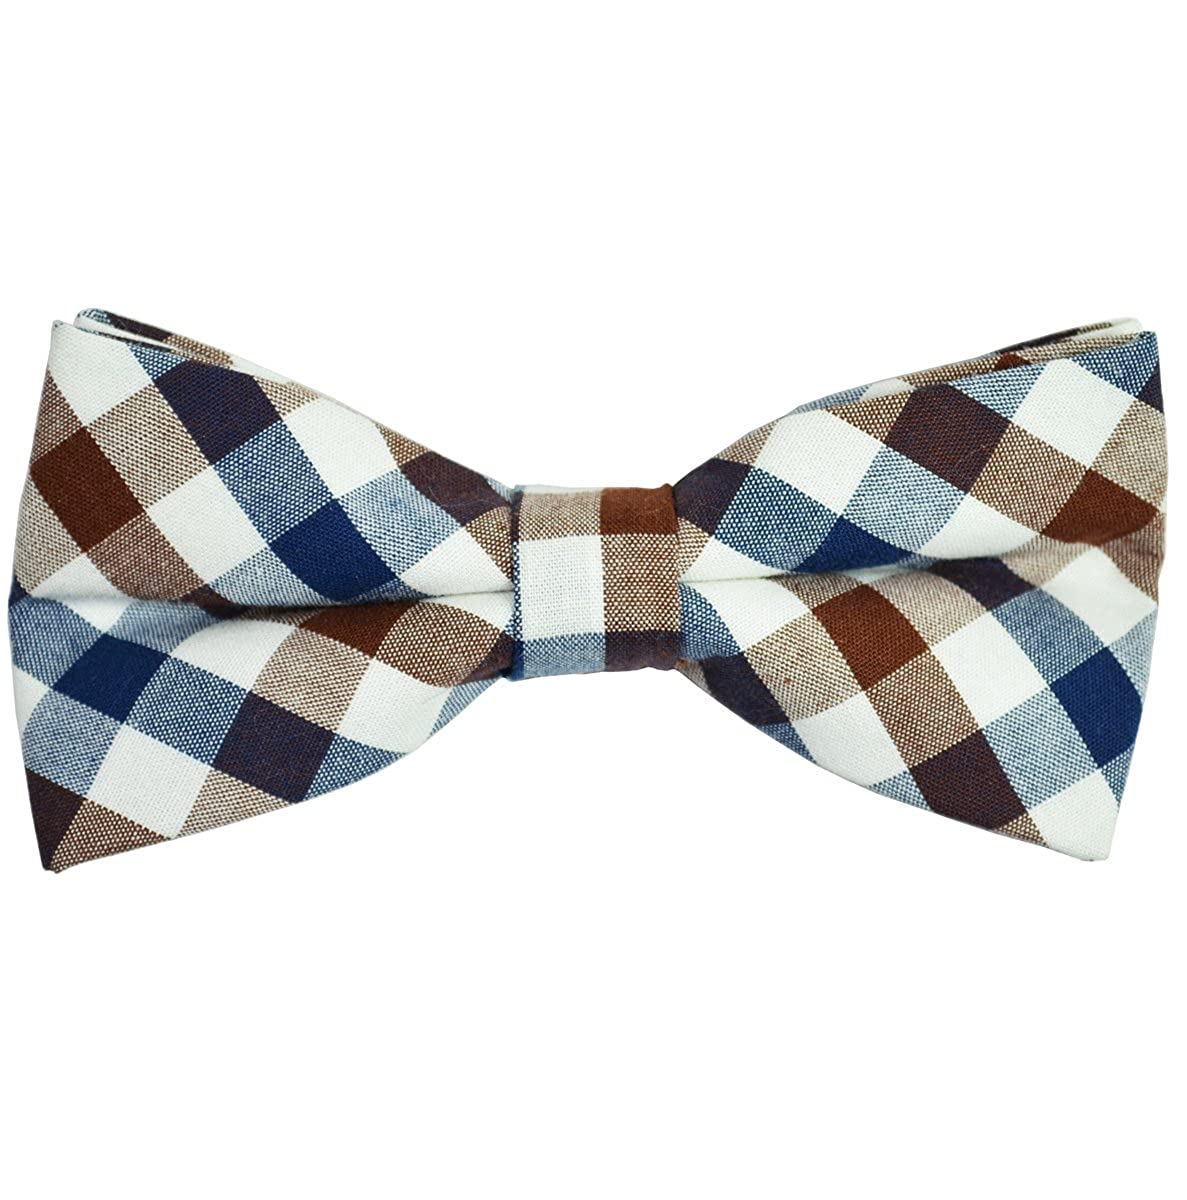 Paul Malone Cotton Bow Tie Navy Brown and White